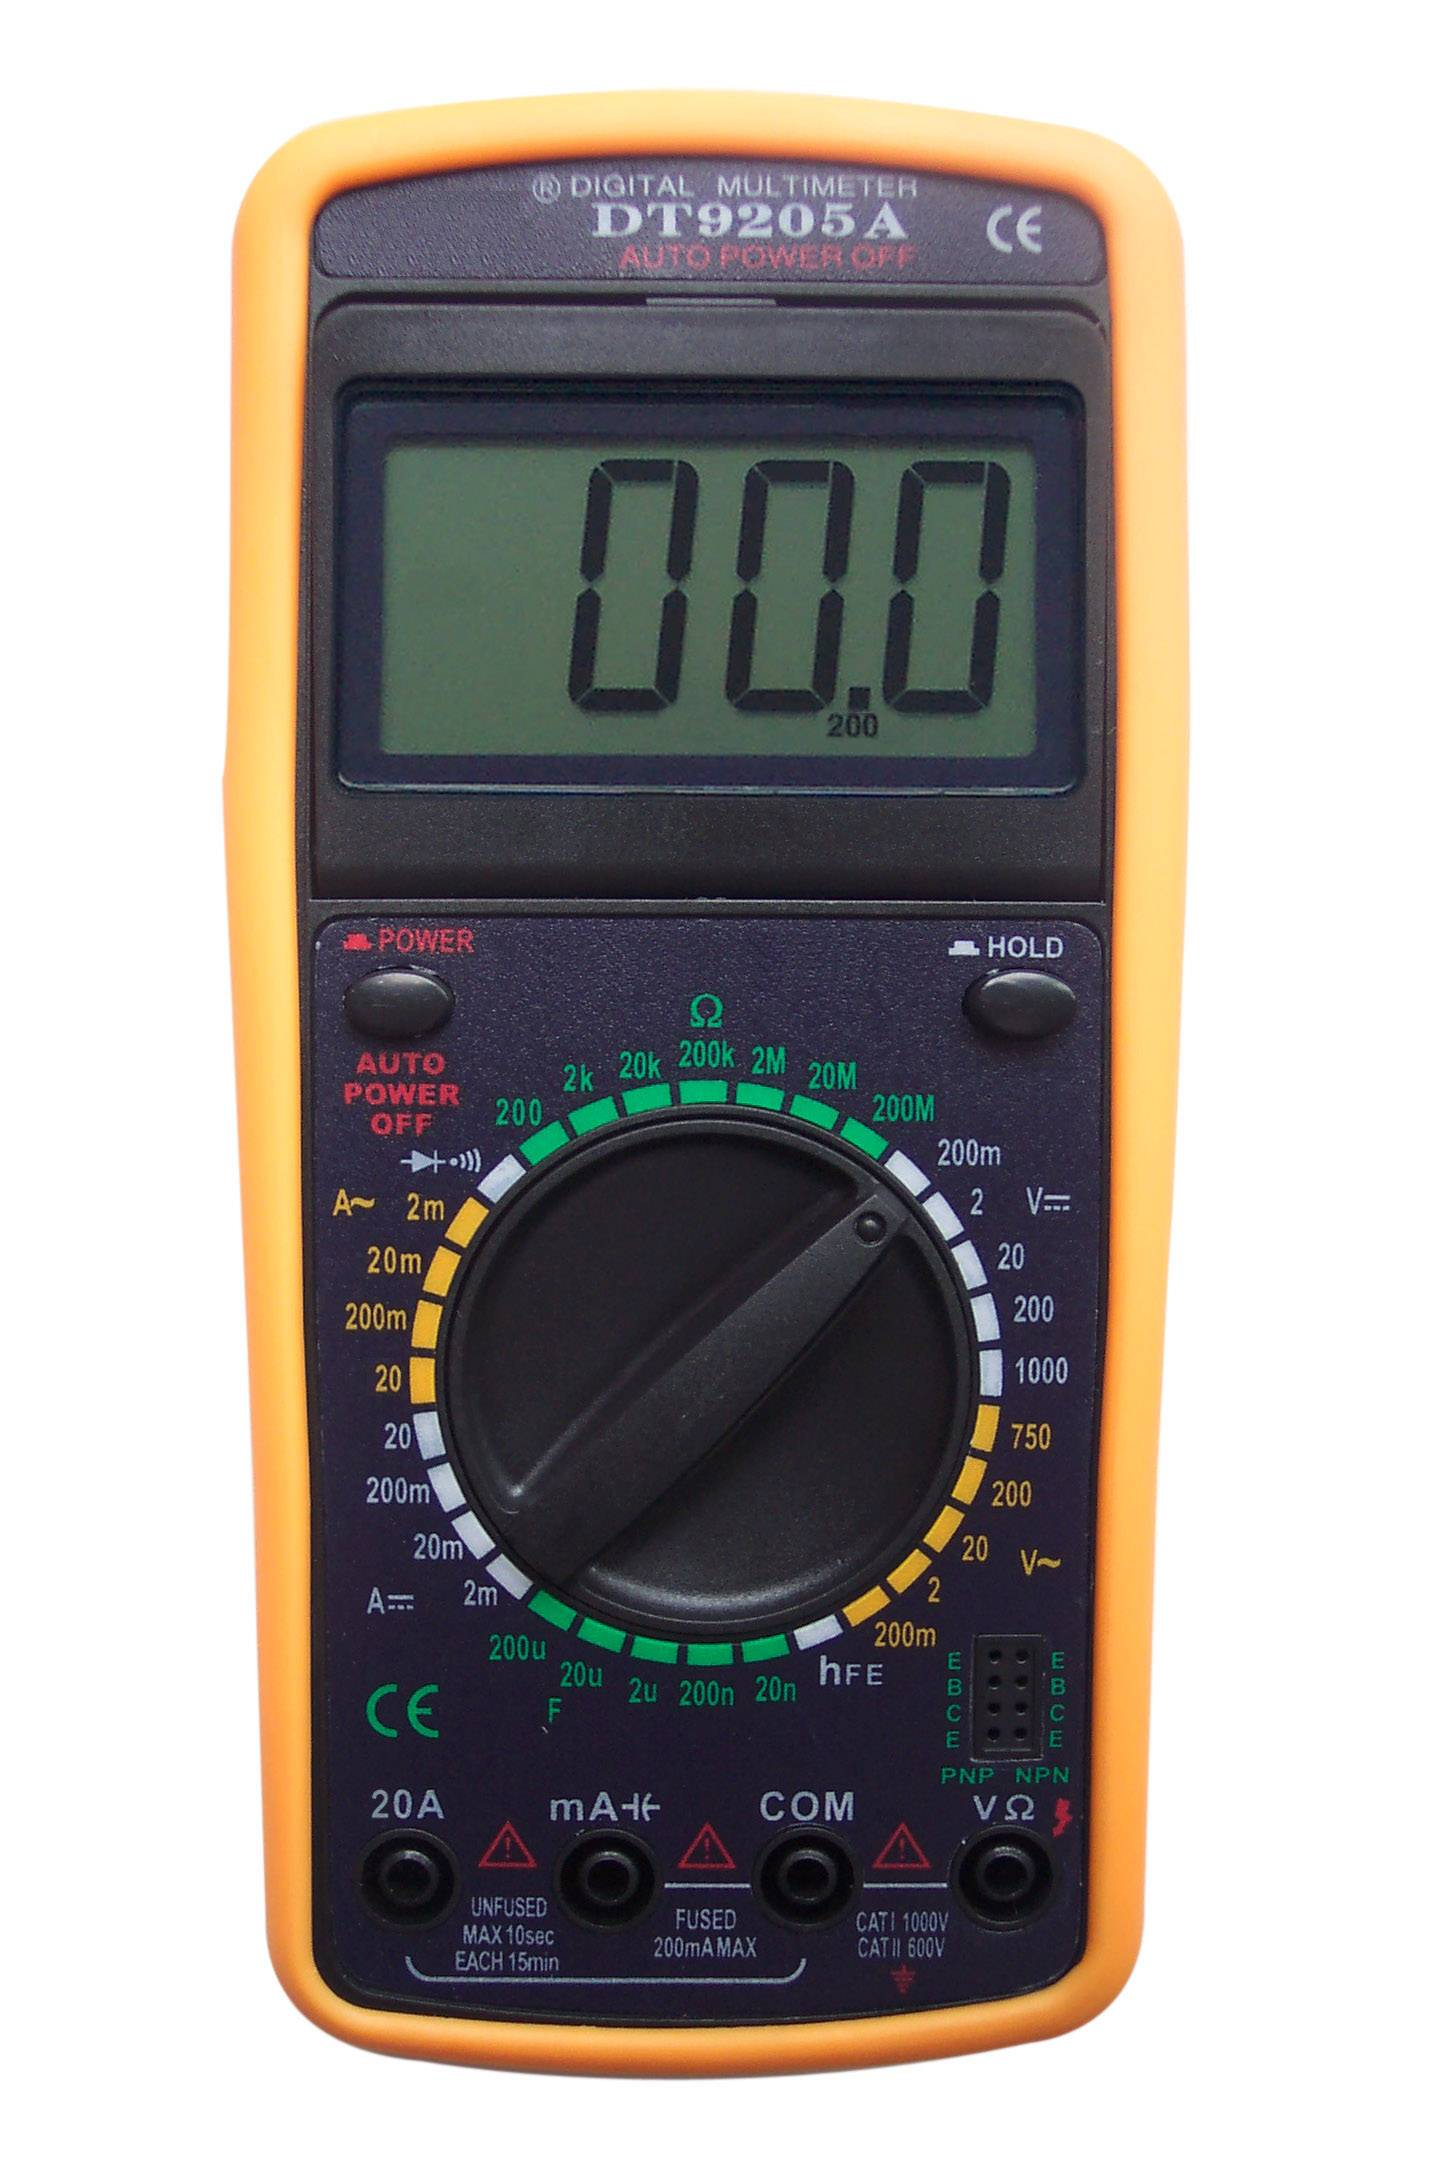 Sell Digital Multimeter DT9205A Manufacturer, Supplier ...